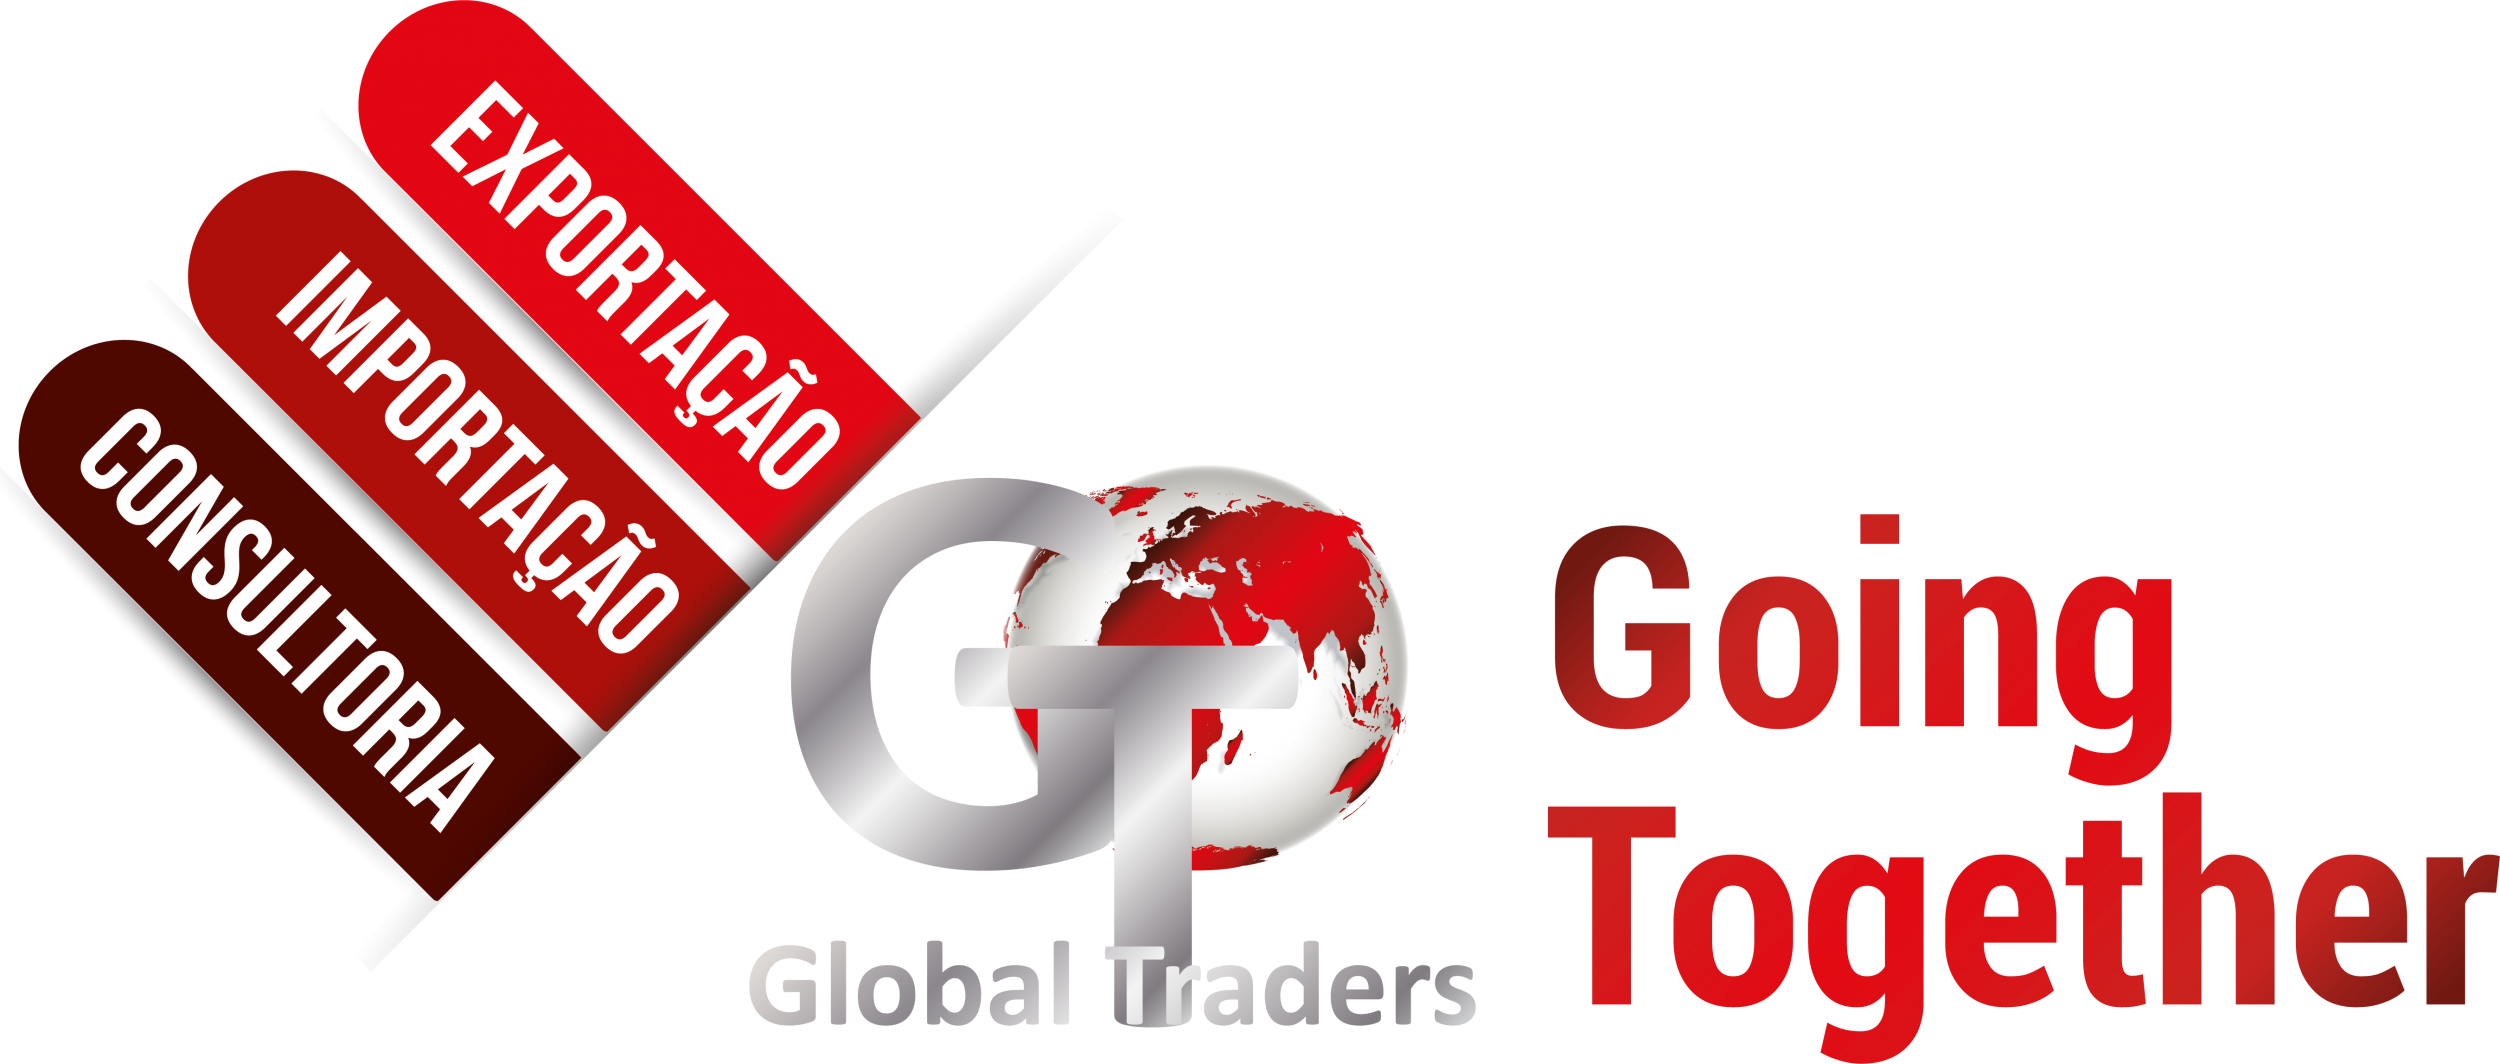 Global Traders pelo mundo